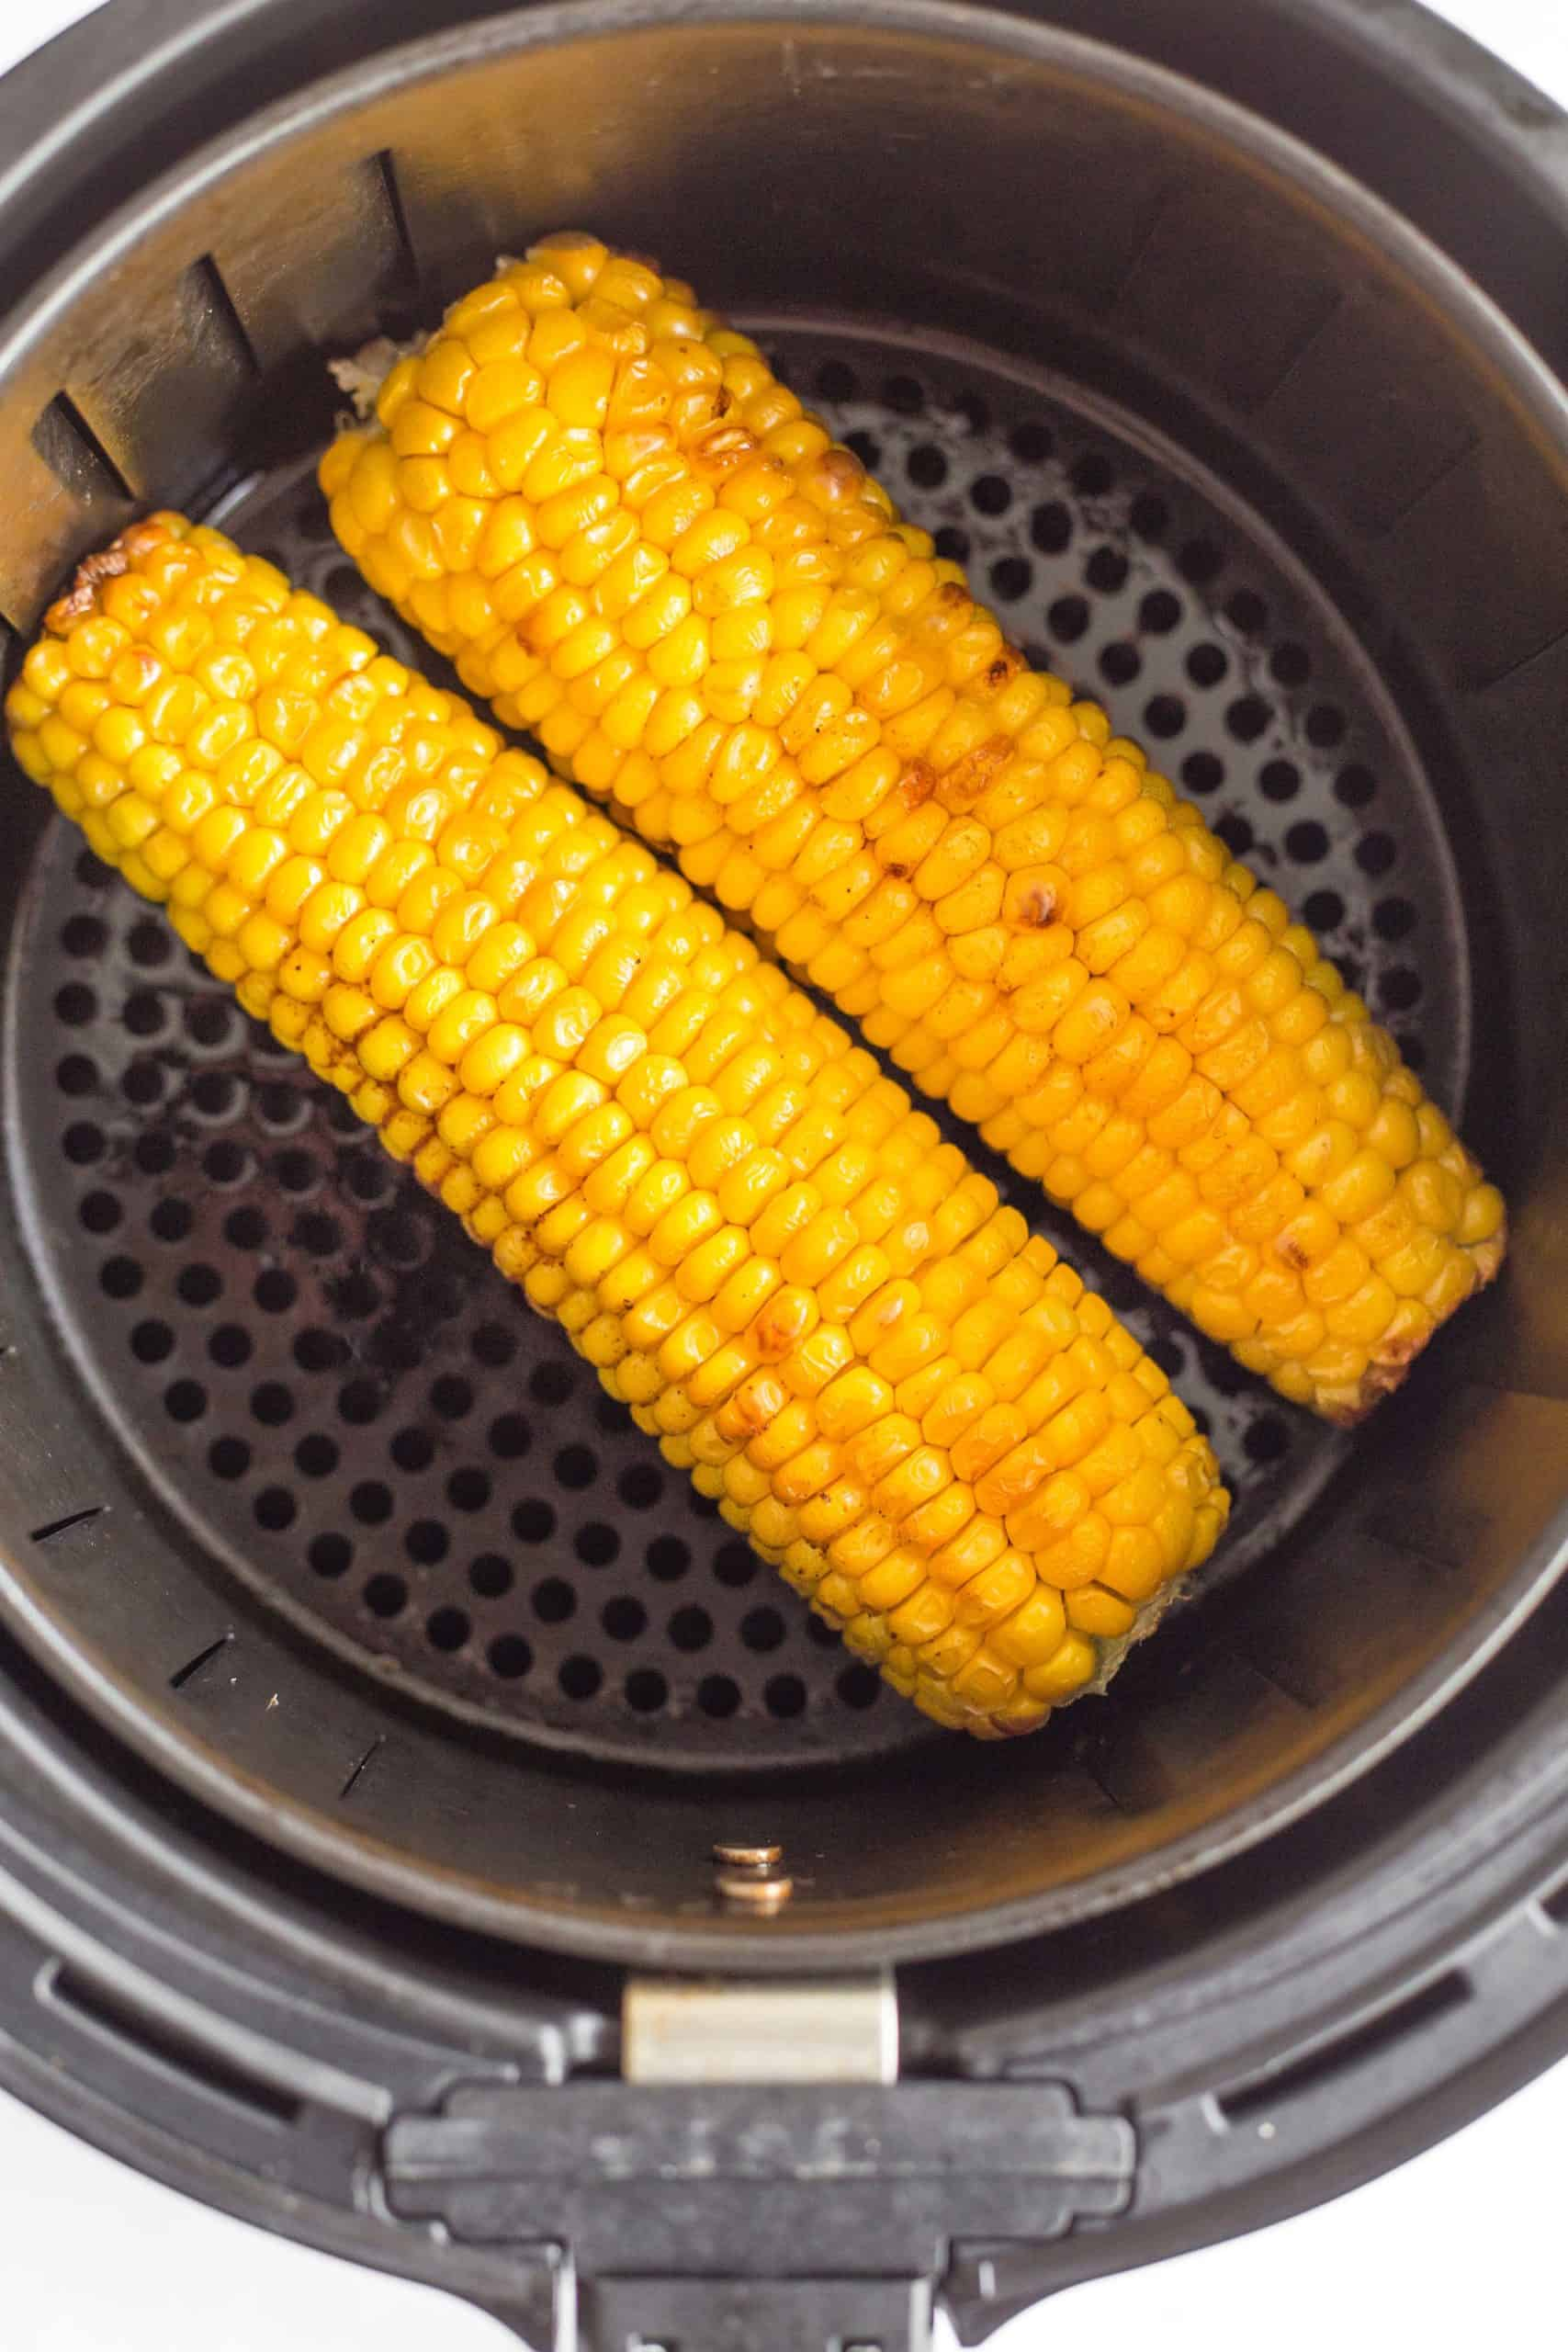 Freshly cooked air fryer corn on the cob in the air fryer basket.